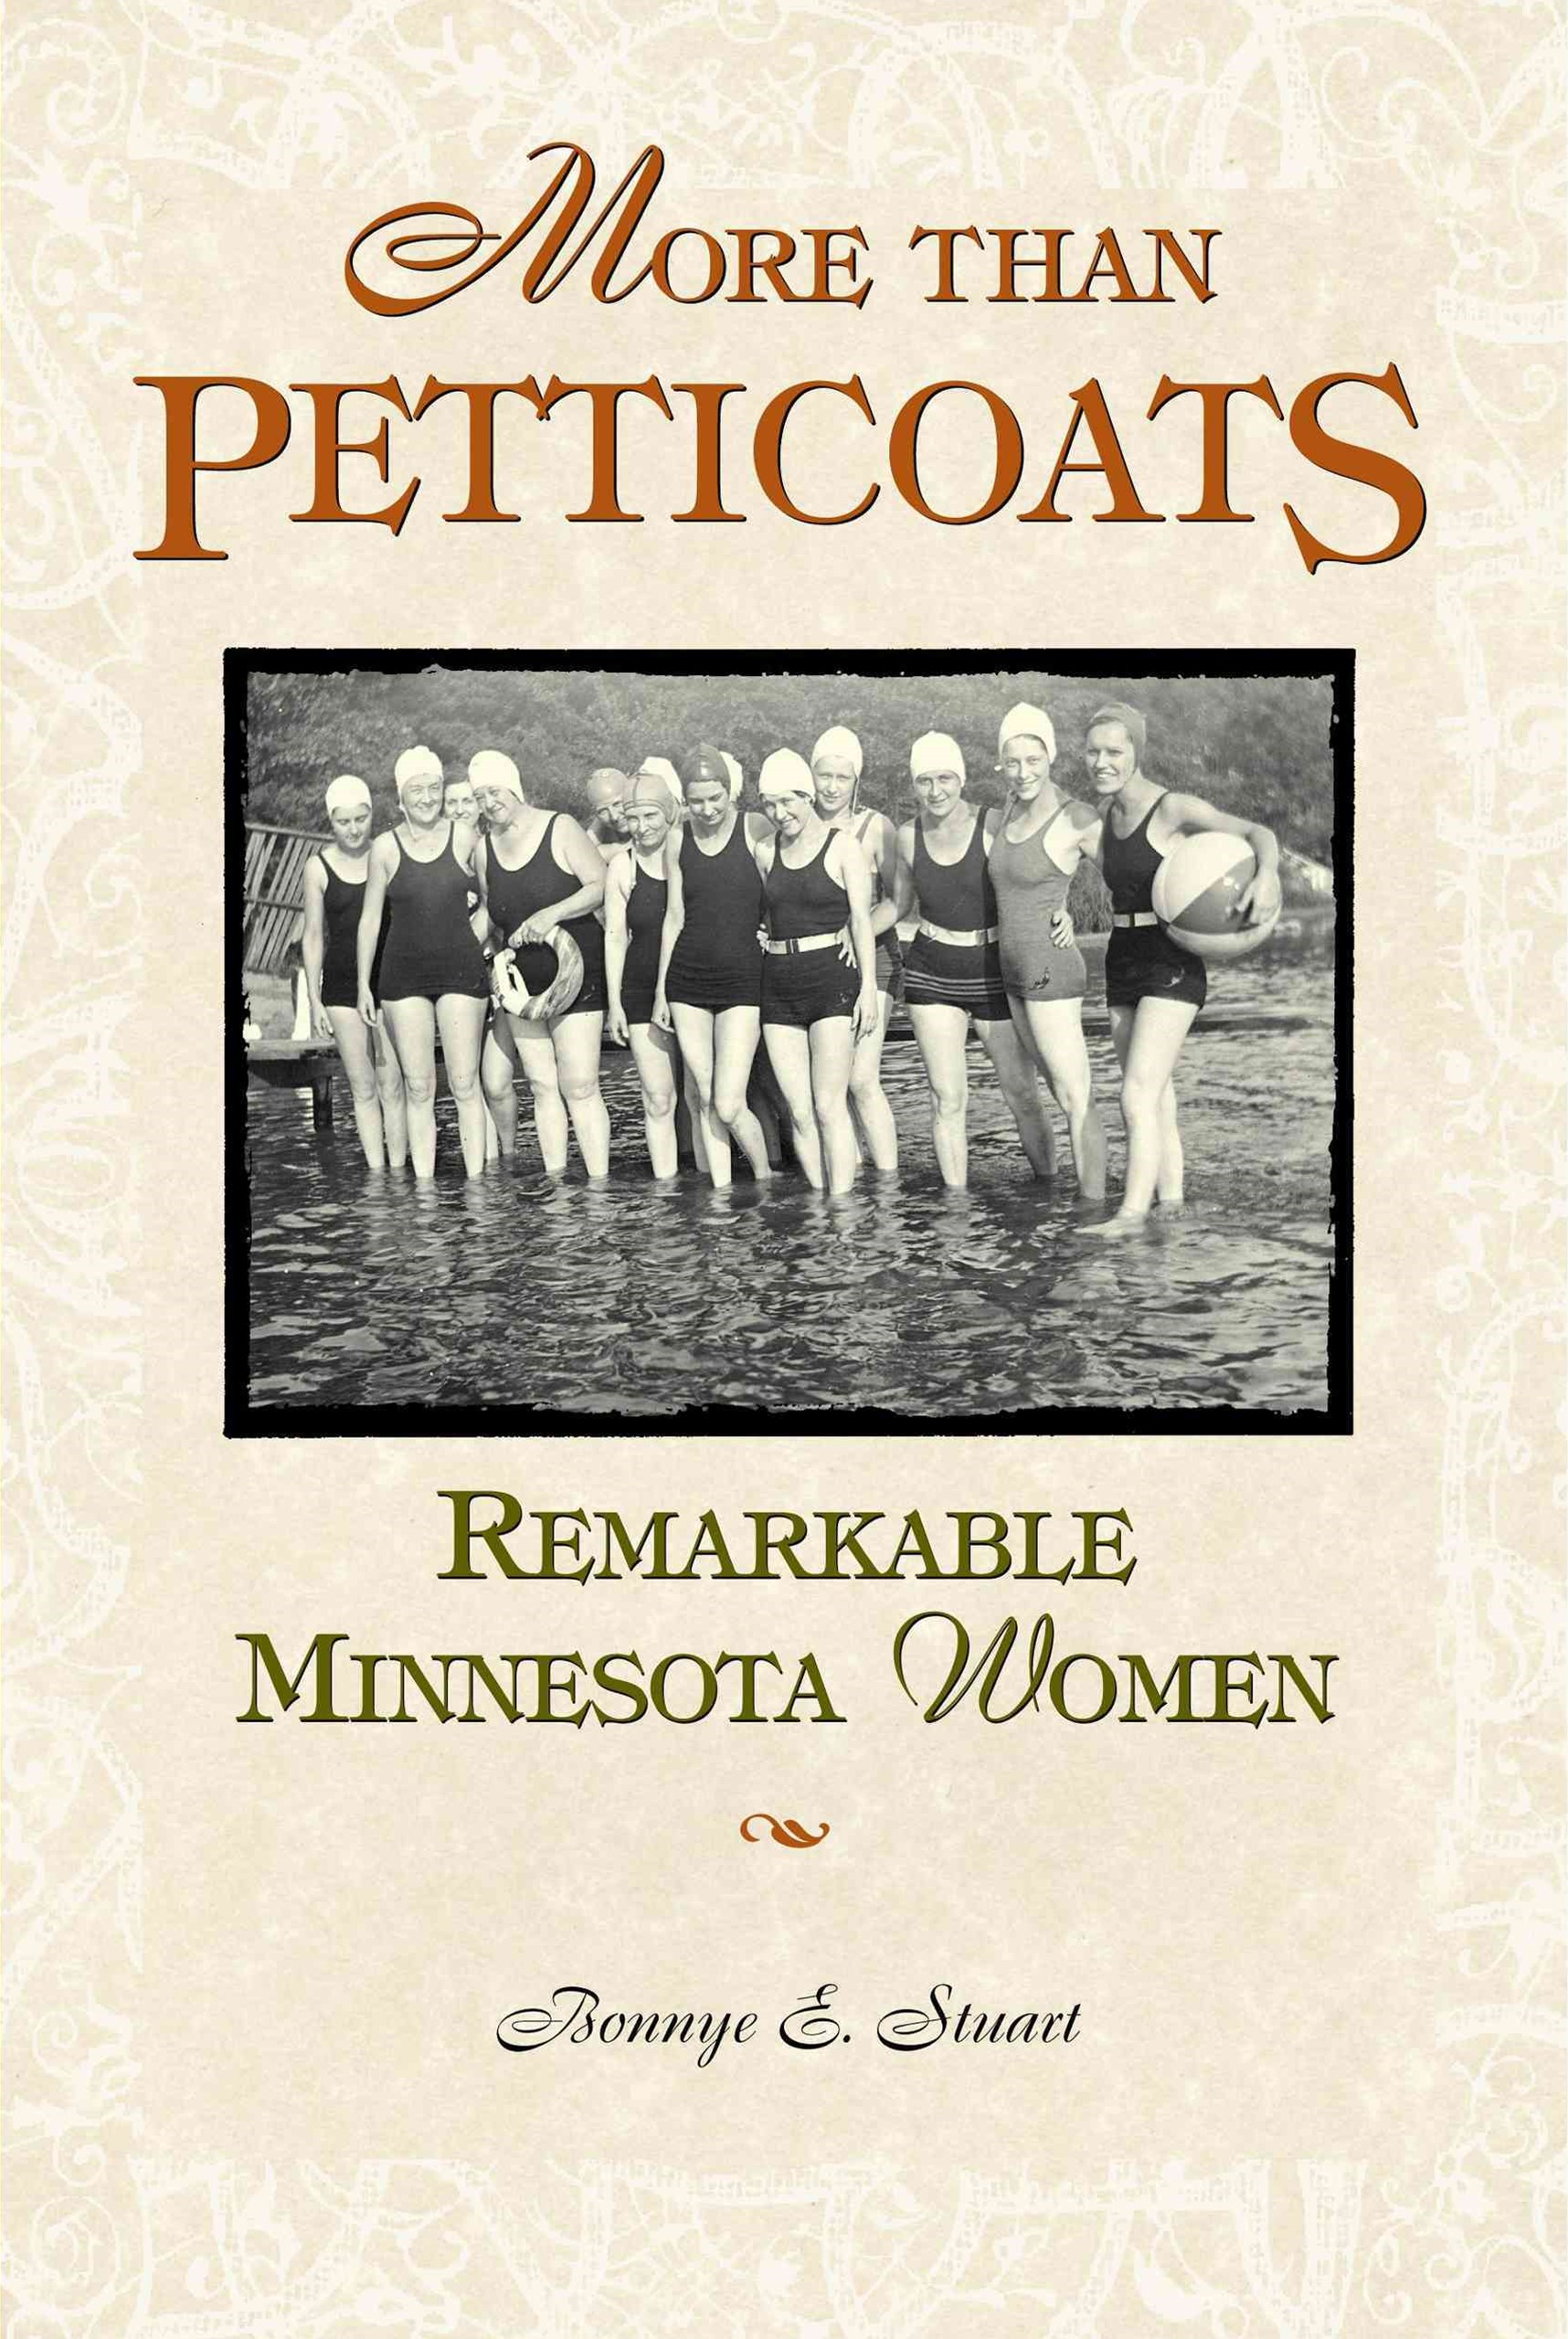 Remarkable Minnesota Women